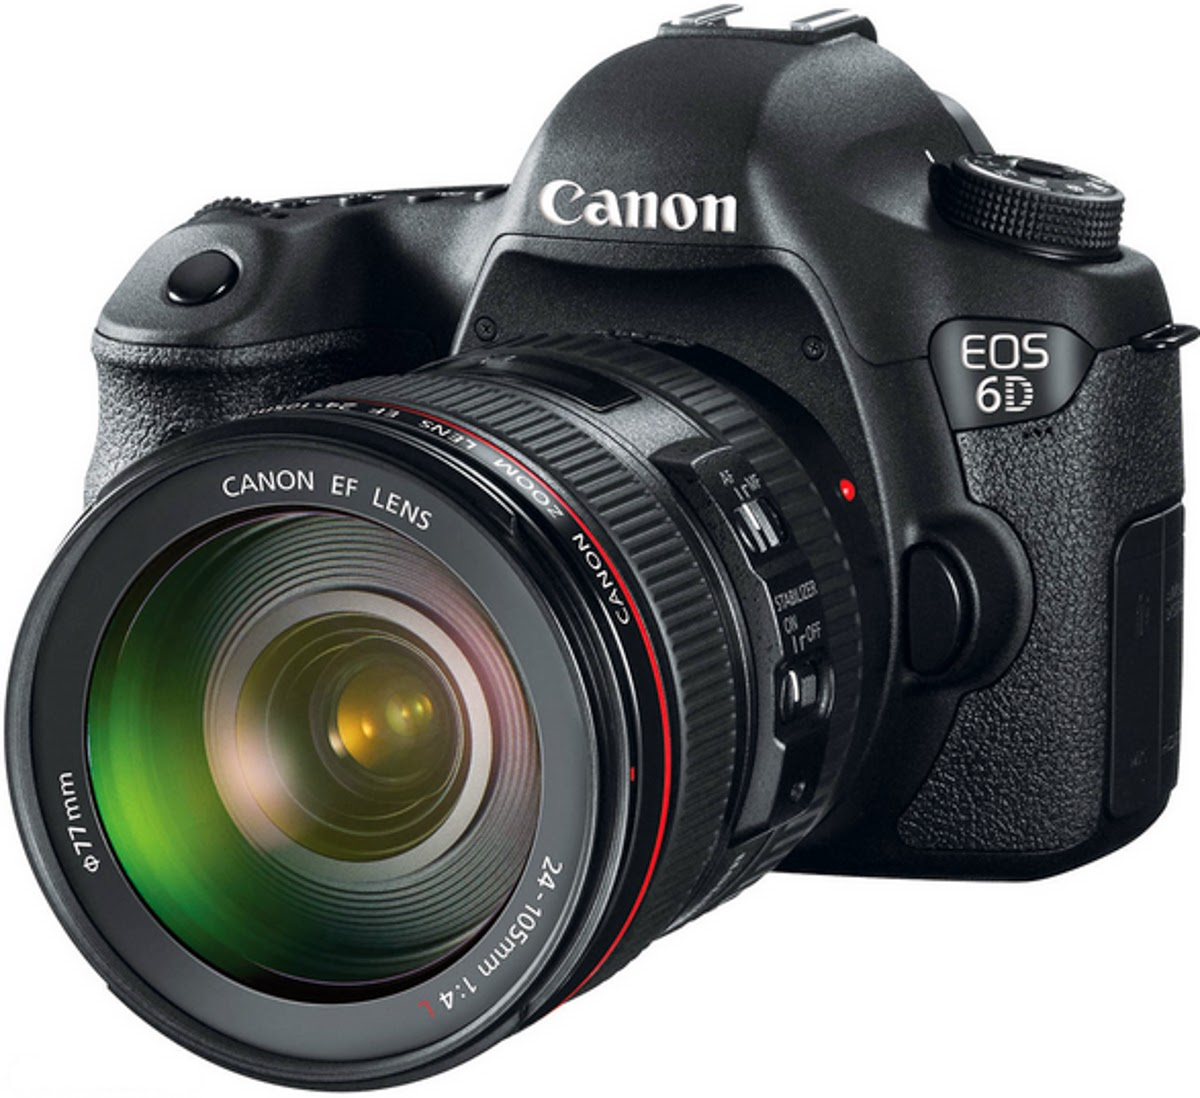 Canon EOS 6D: Links to Professional / Consumer Reviews